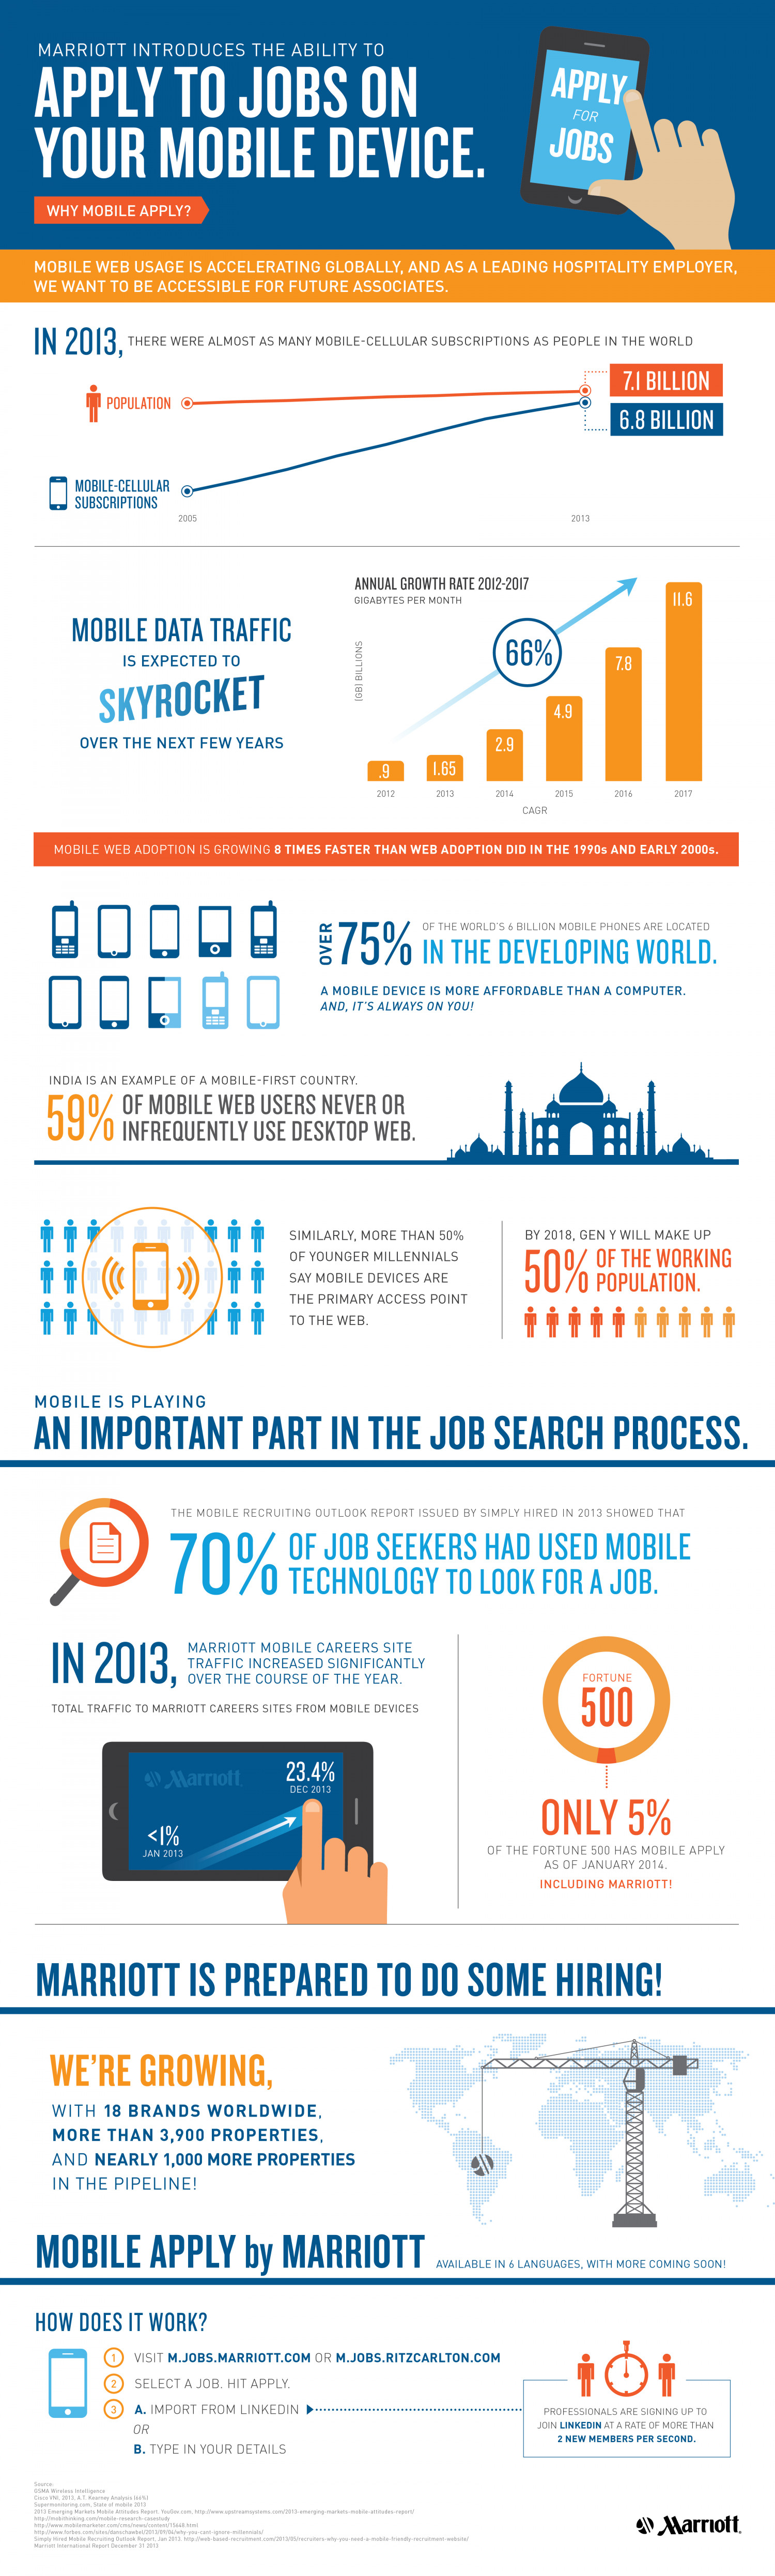 Apply To Jobs On Your Mobile Device Infographic